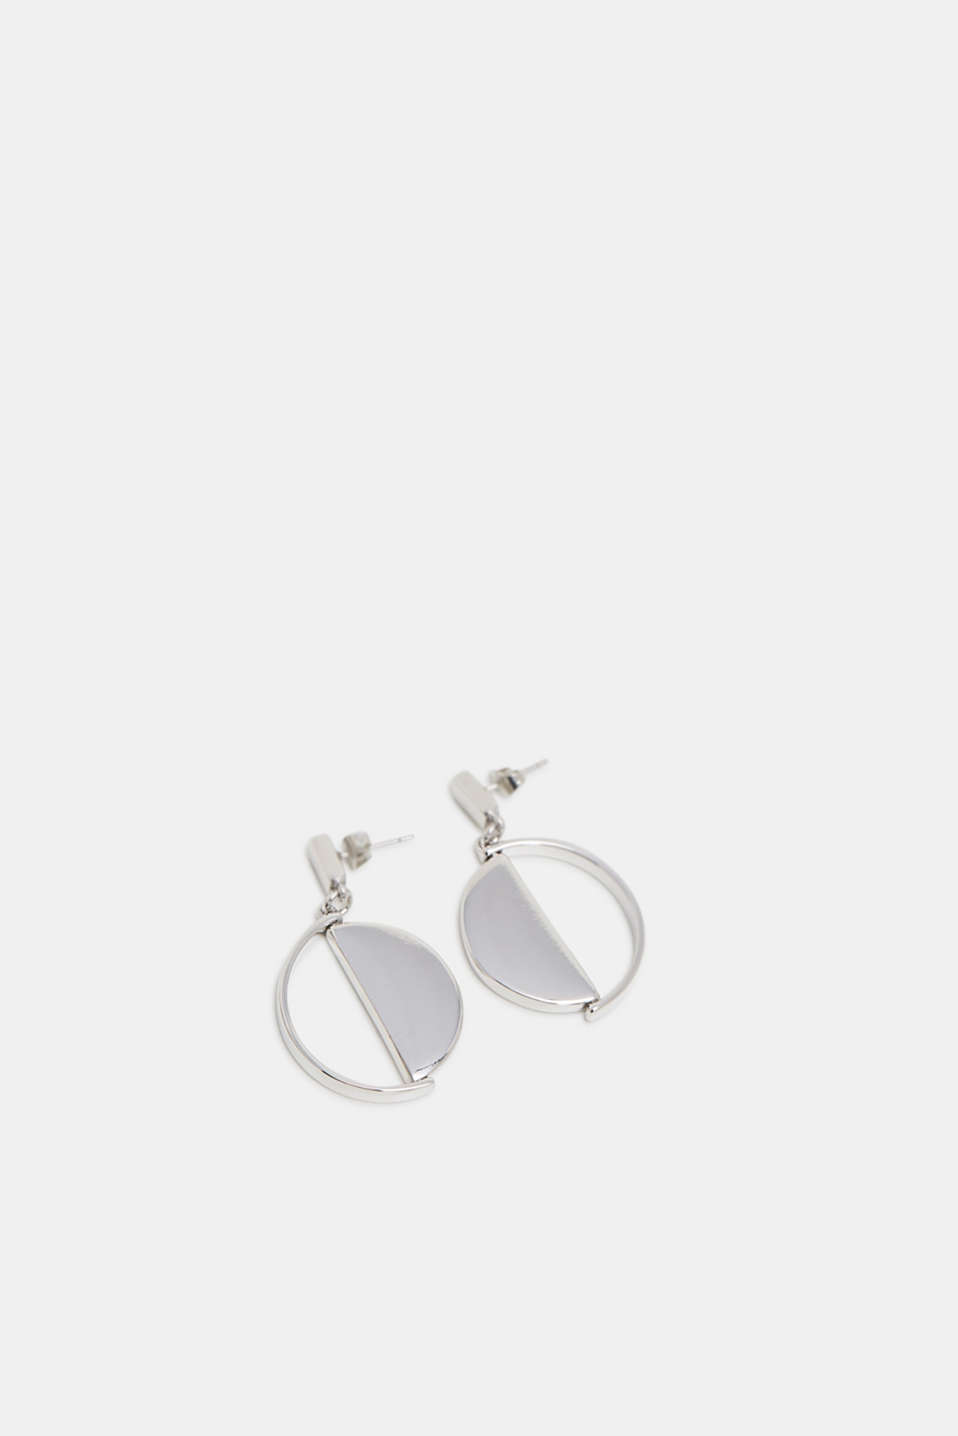 Esprit - Metal stud earrings with a mobile link